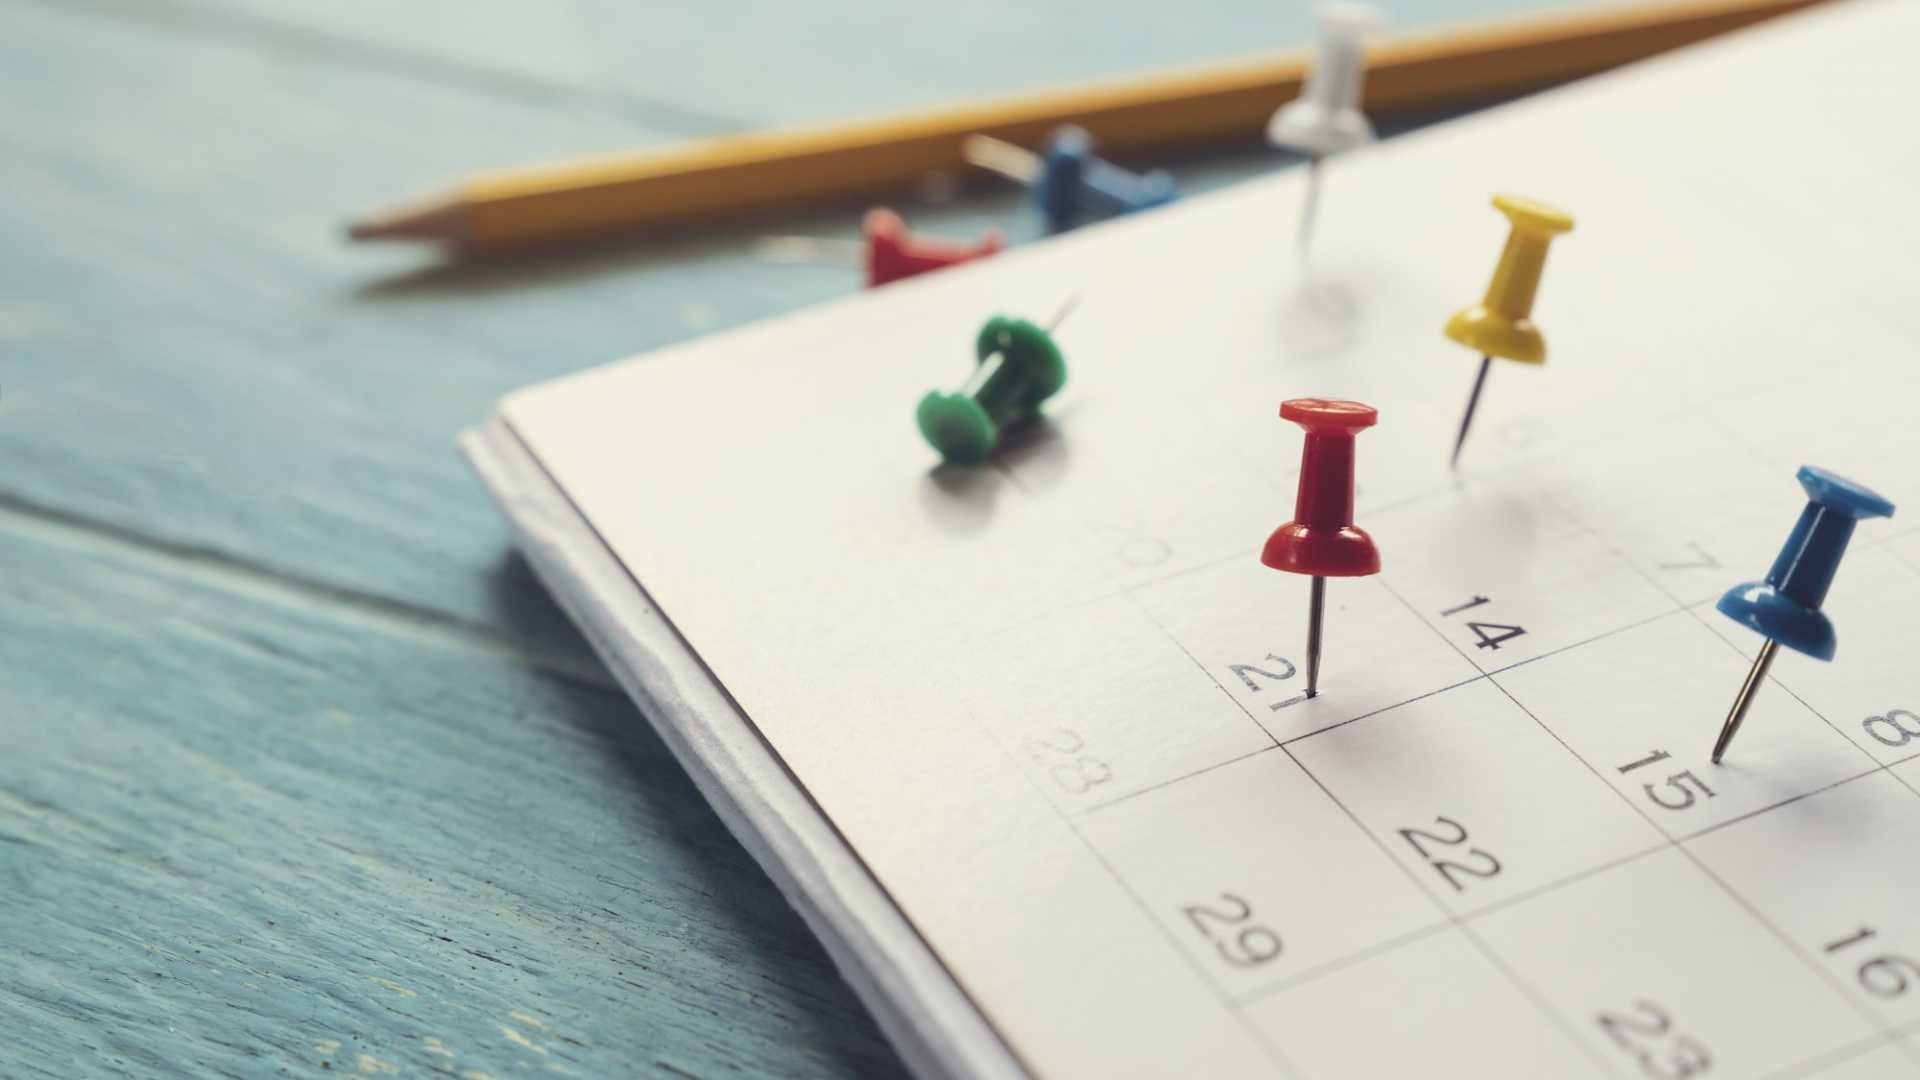 Take Your Time Management to the Next Level: Try Scheduling a 'Mega Day'